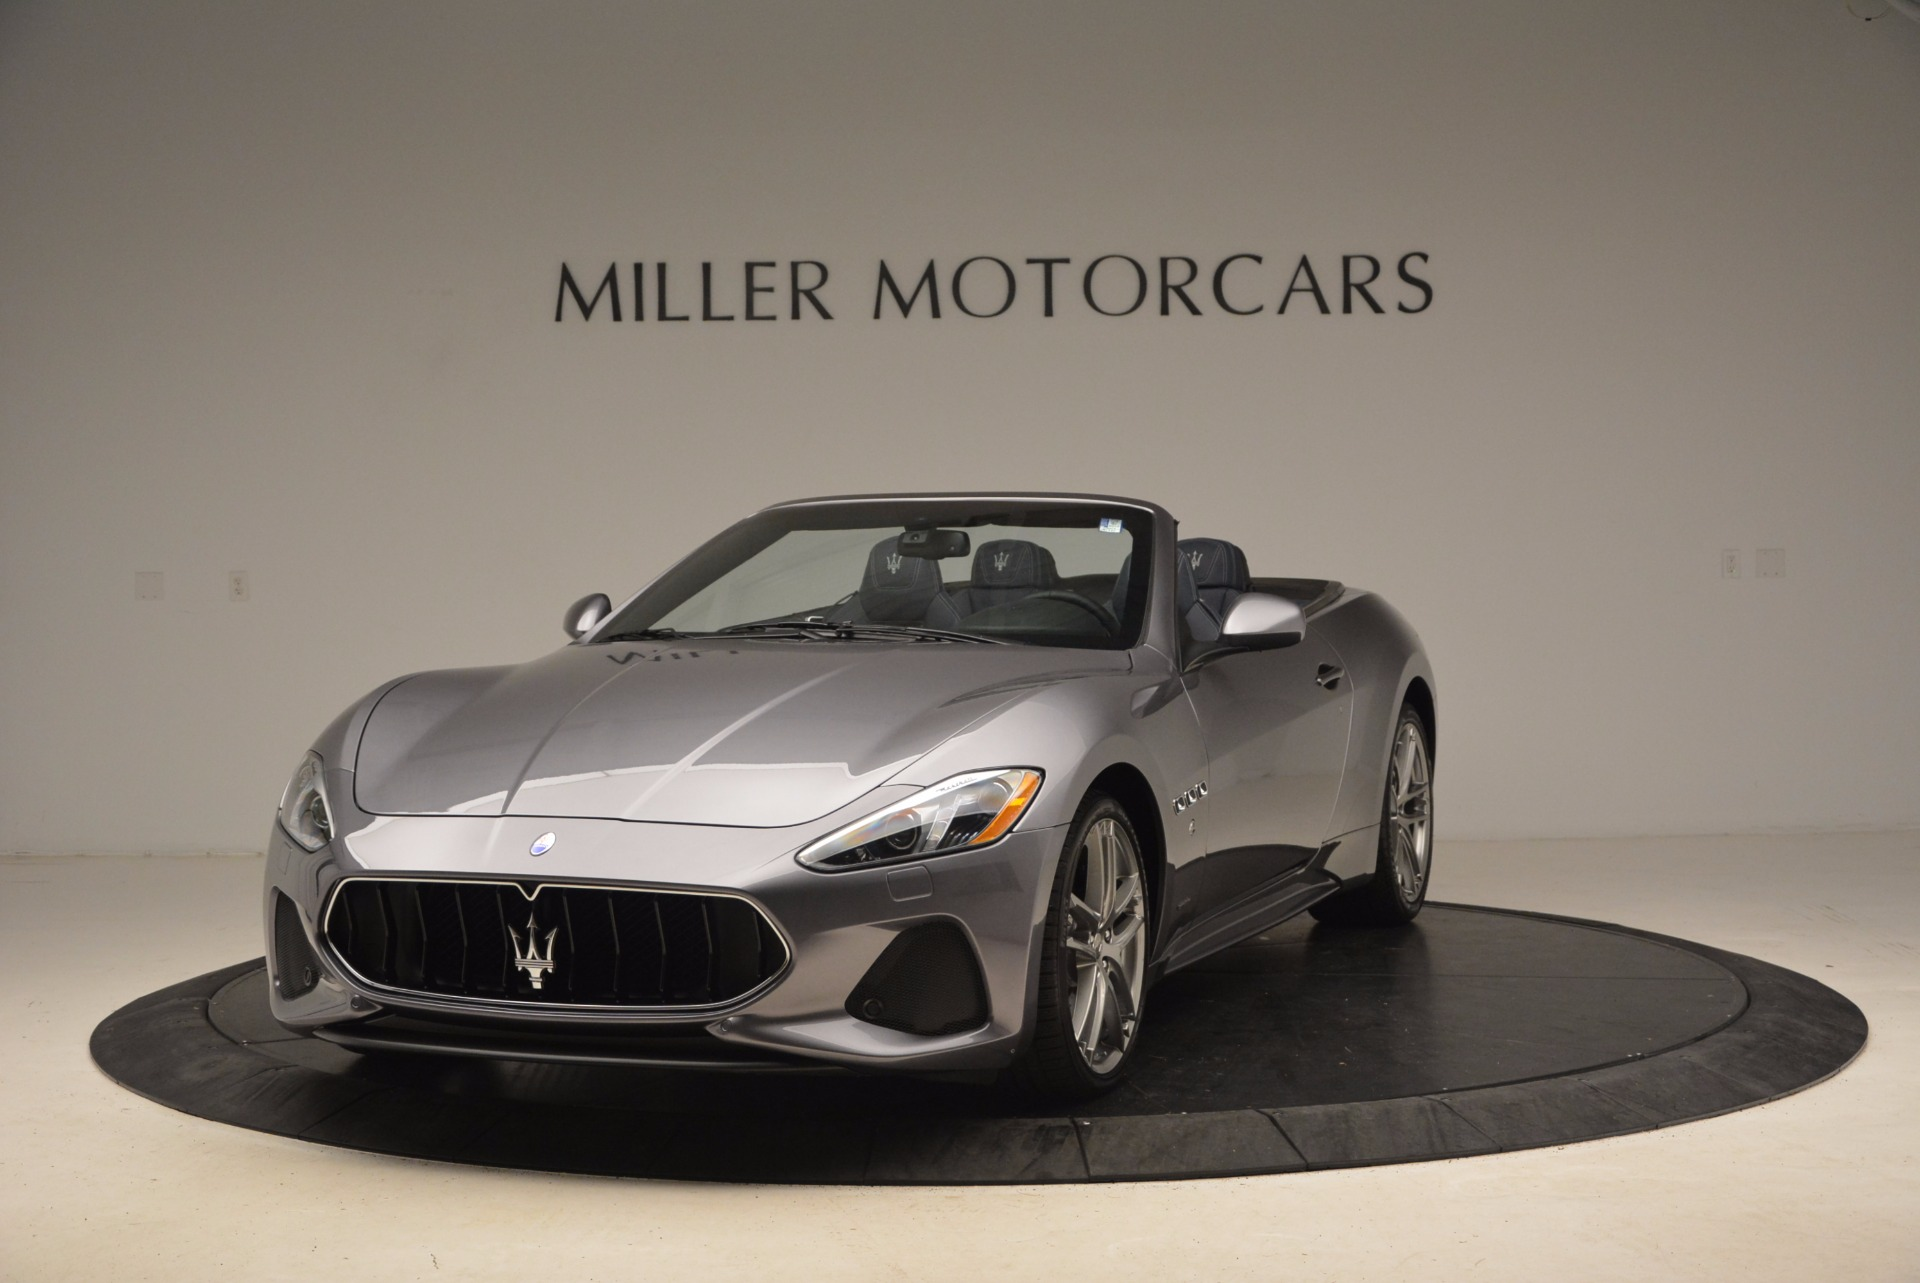 Used 2018 Maserati GranTurismo Sport Convertible for sale Sold at Bentley Greenwich in Greenwich CT 06830 1